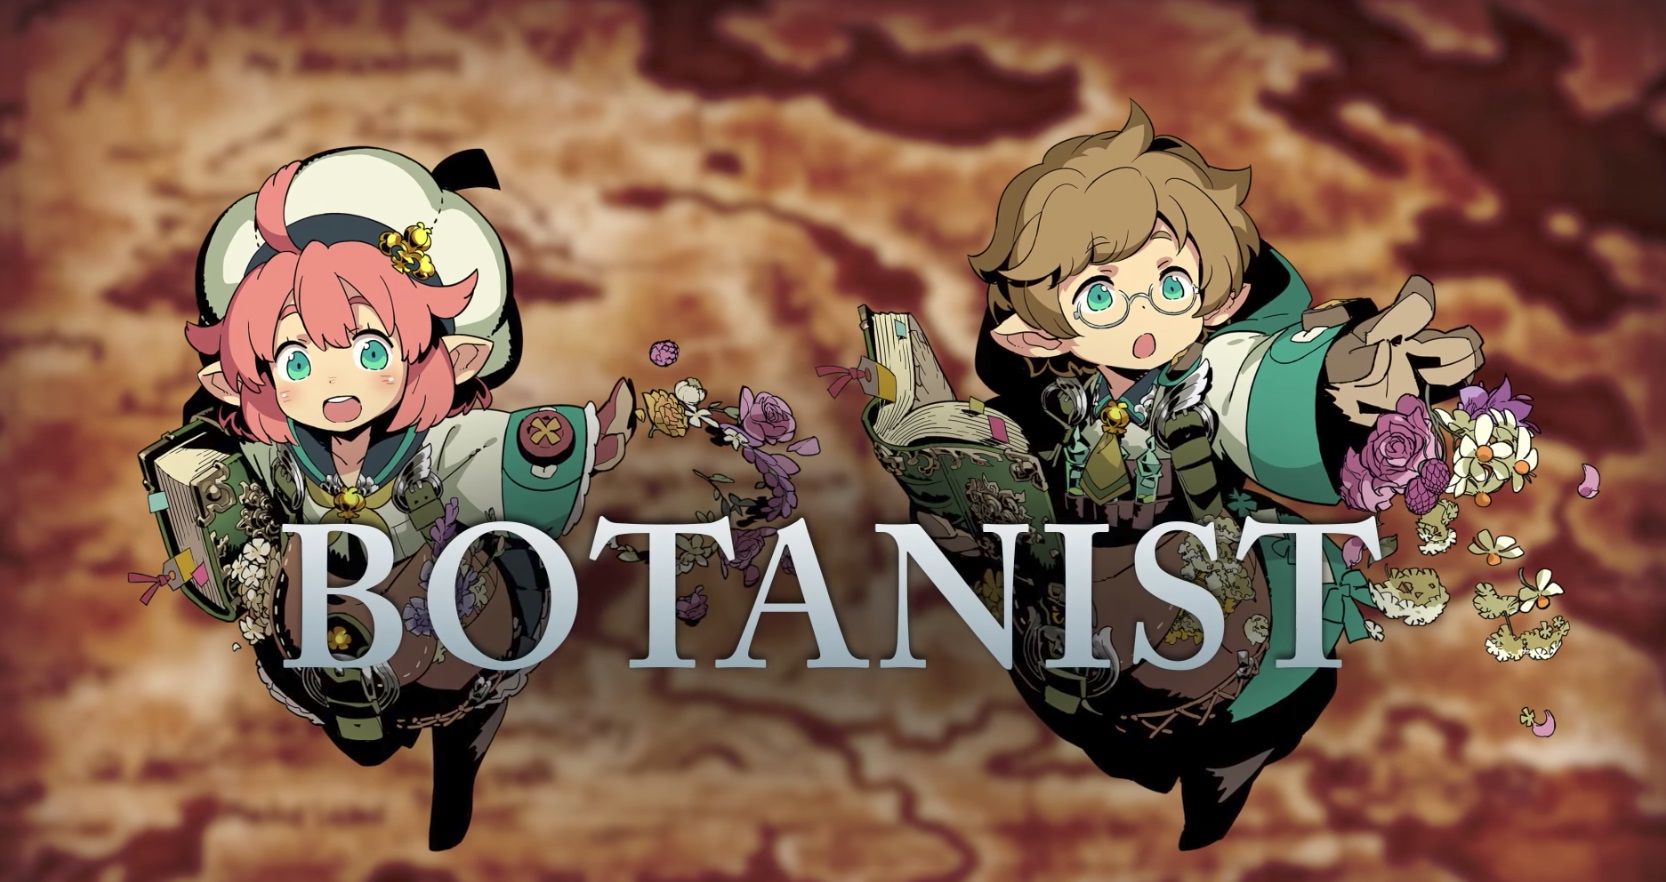 Heal your friends and kill your enemies with plants as a Botanist in Etrian Odyssey V screenshot